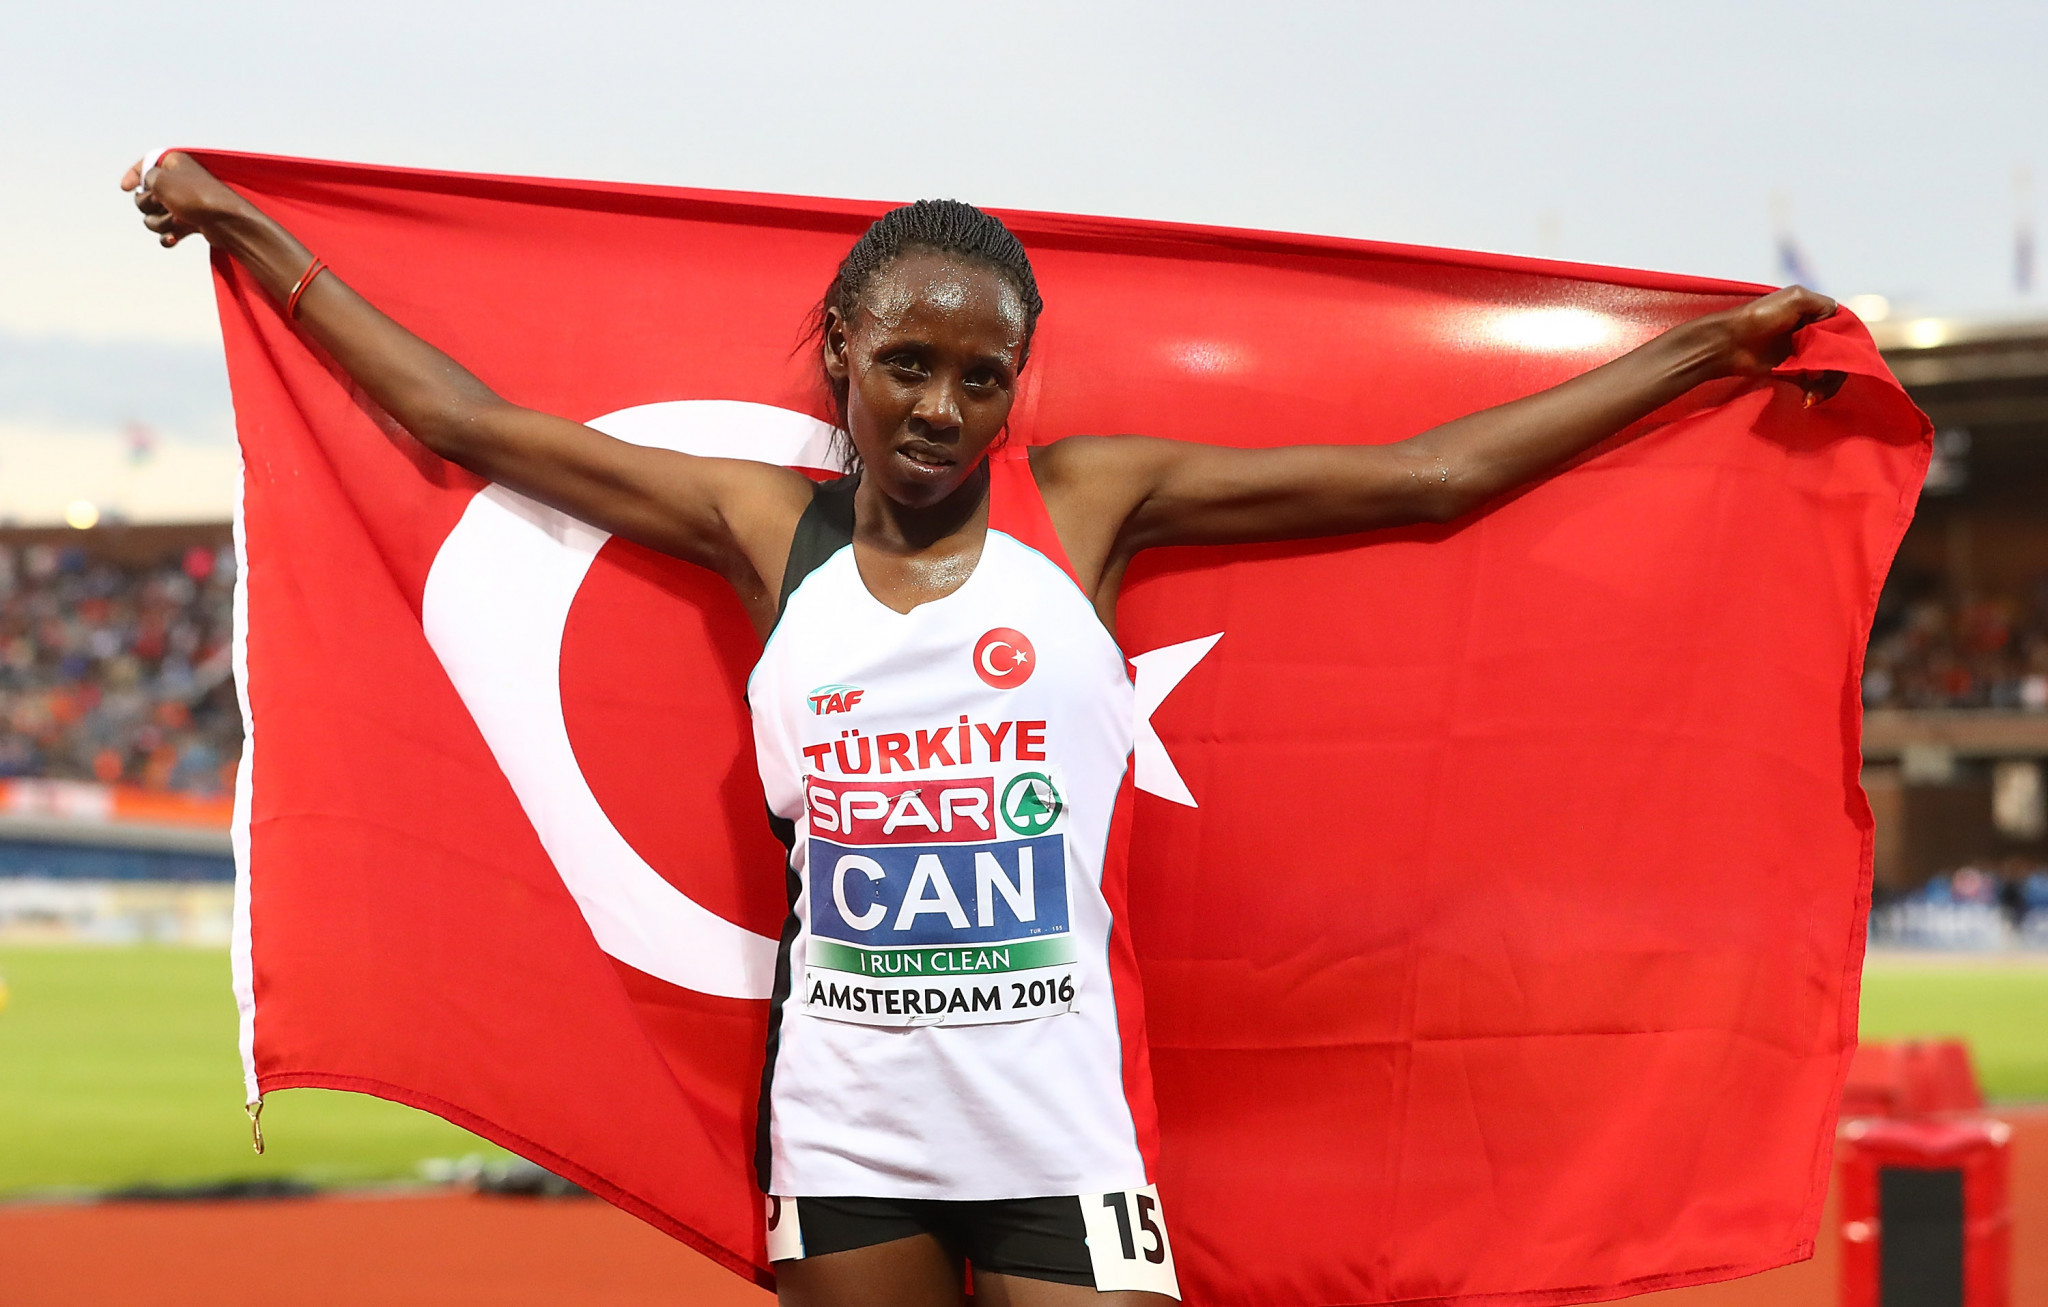 European 5,000m and 10,000m gold mdallist Yasemin Can competes for Turkey, although she continues to live and train in Kenya - the country she switched nationalities from ©Getty Images